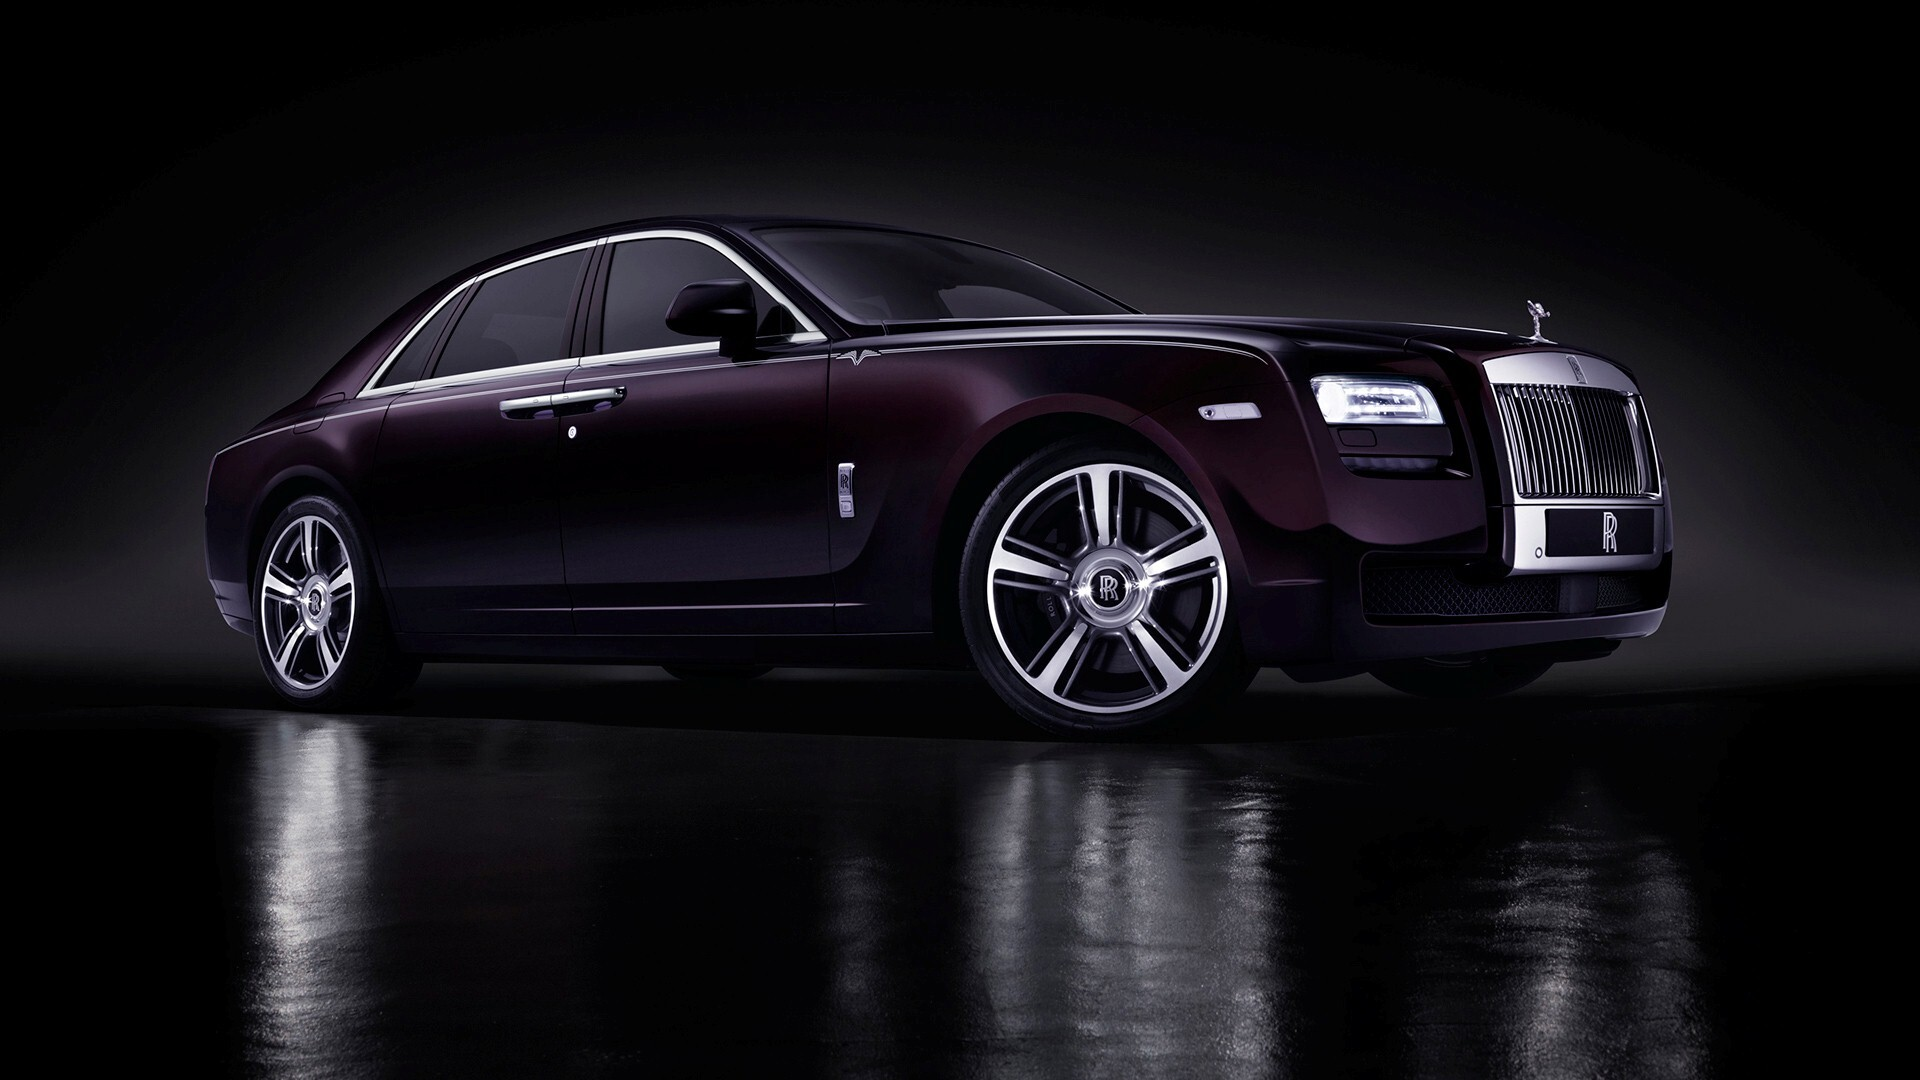 2015 Rolls Royce Ghost Royal Car HD Wallpaper | HD Wallpapers